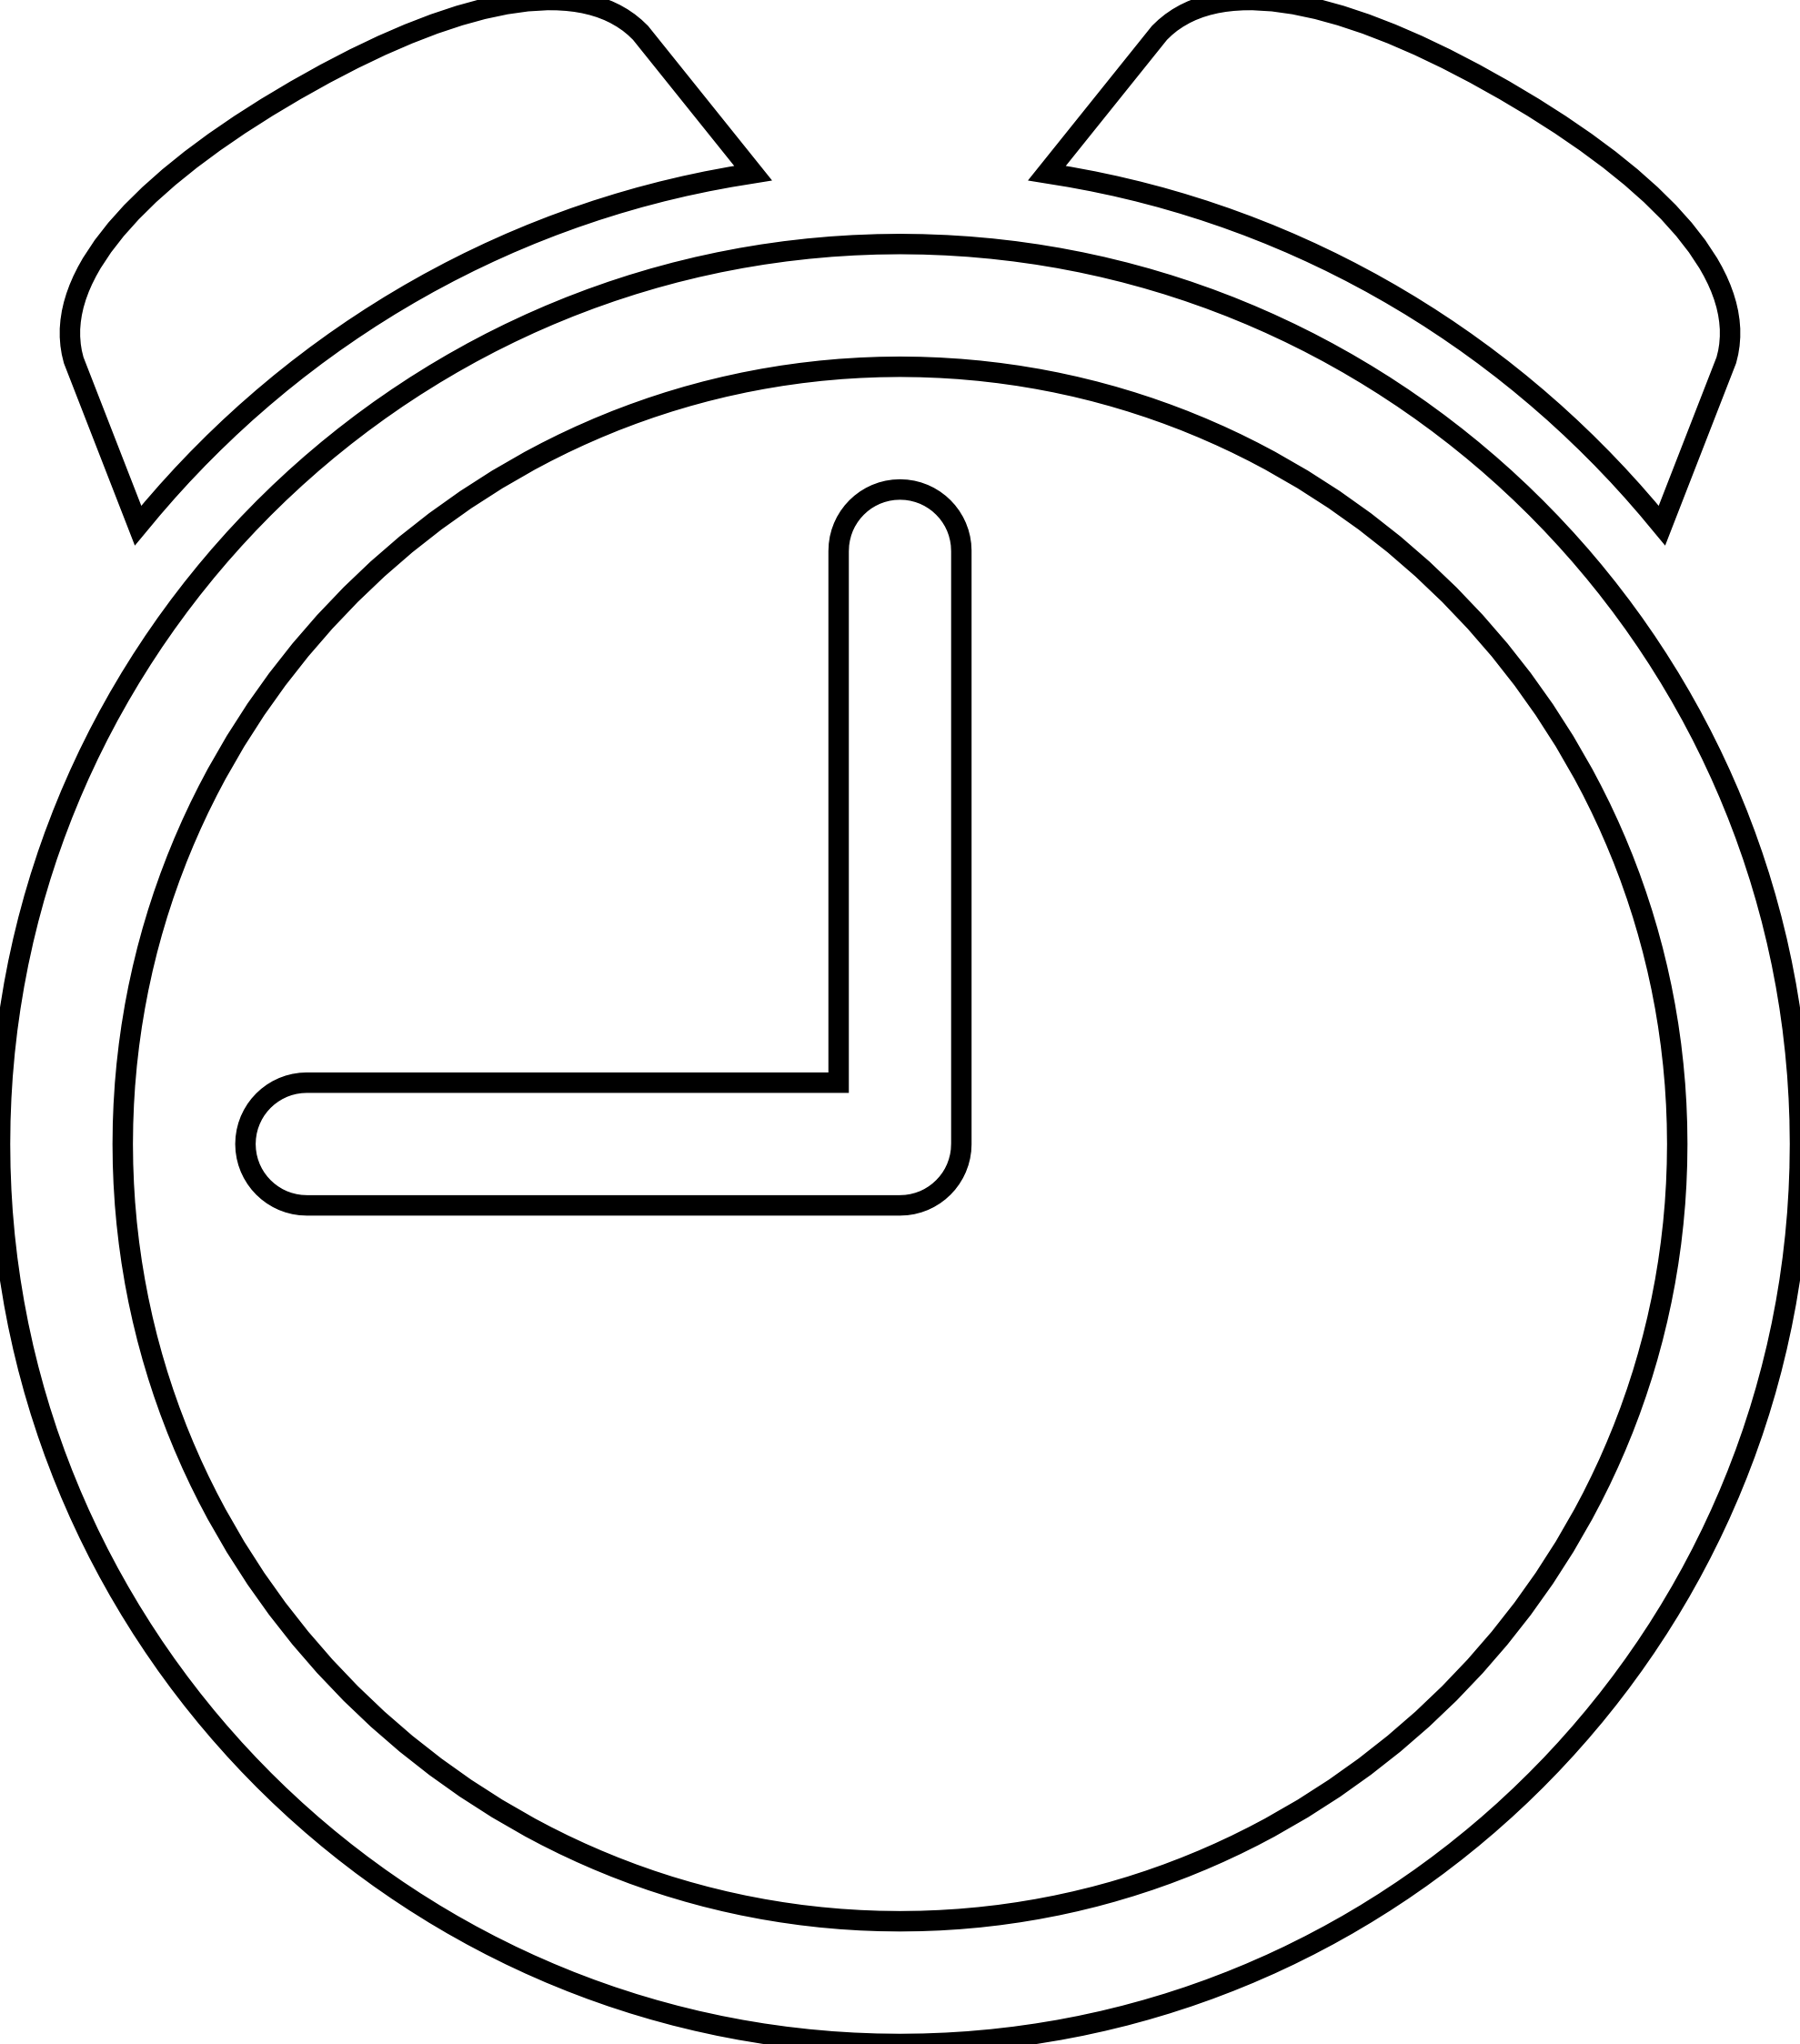 Line Drawing Icons : Clock clipart black and white panda free